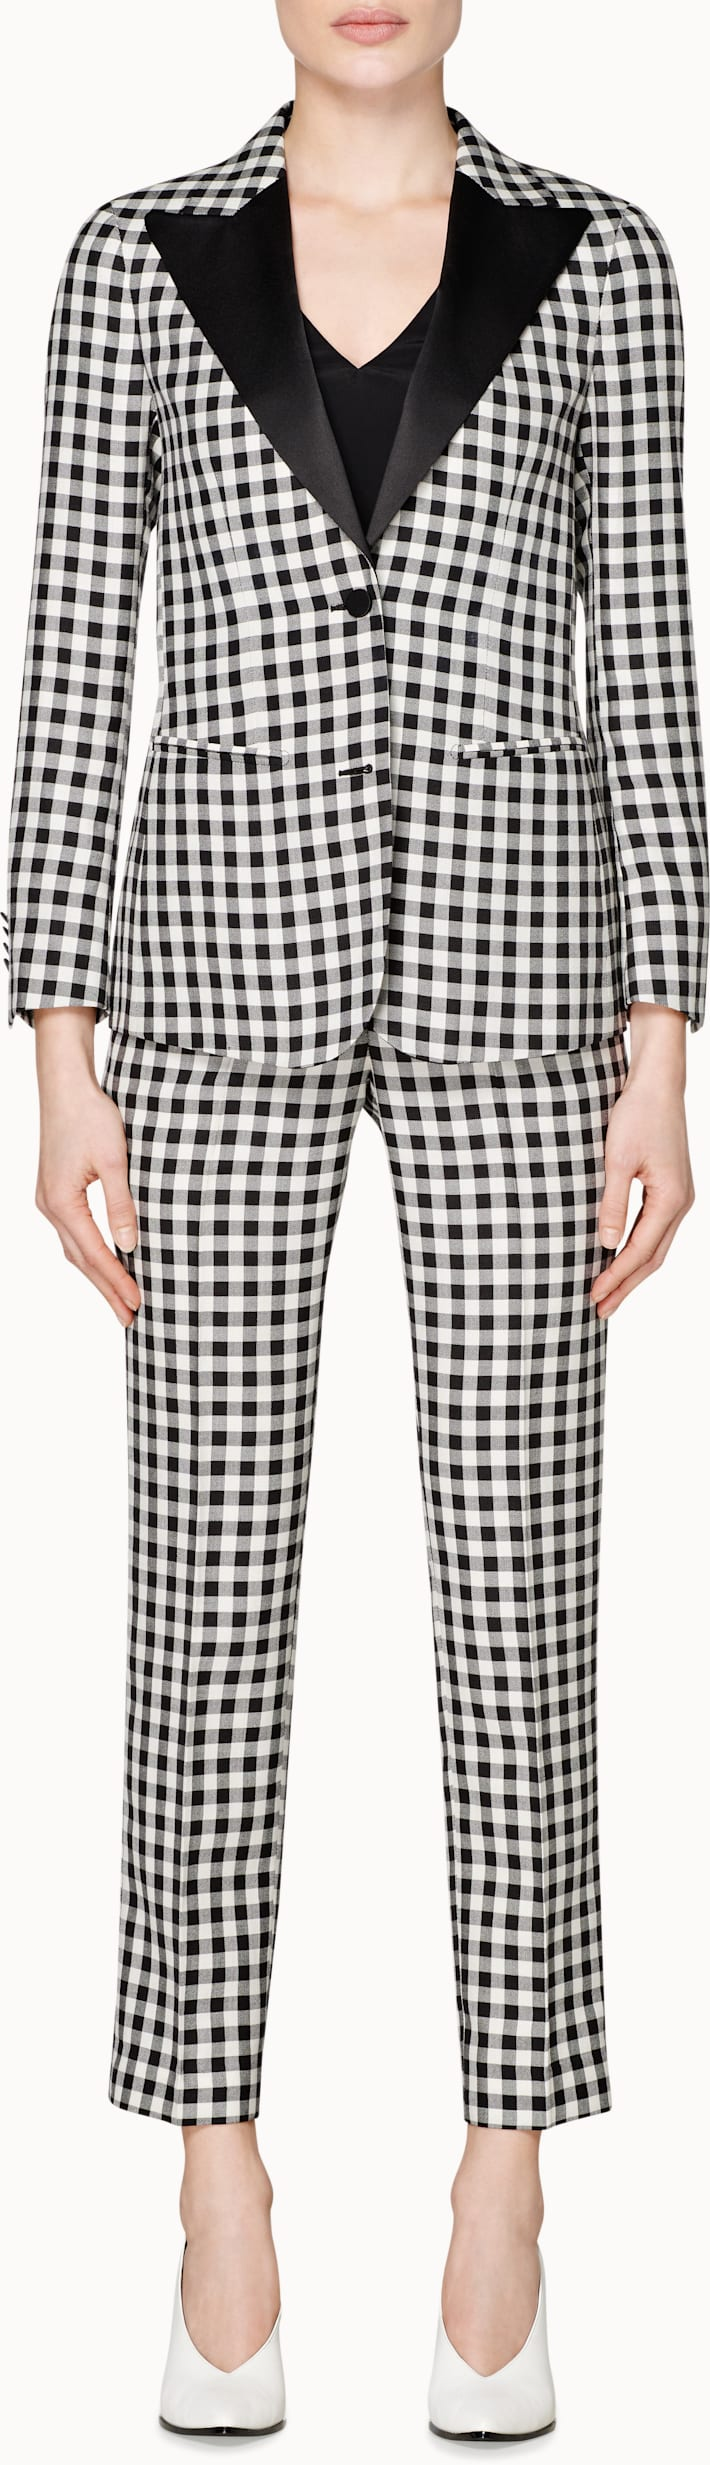 Jay Black & White Checked Suit